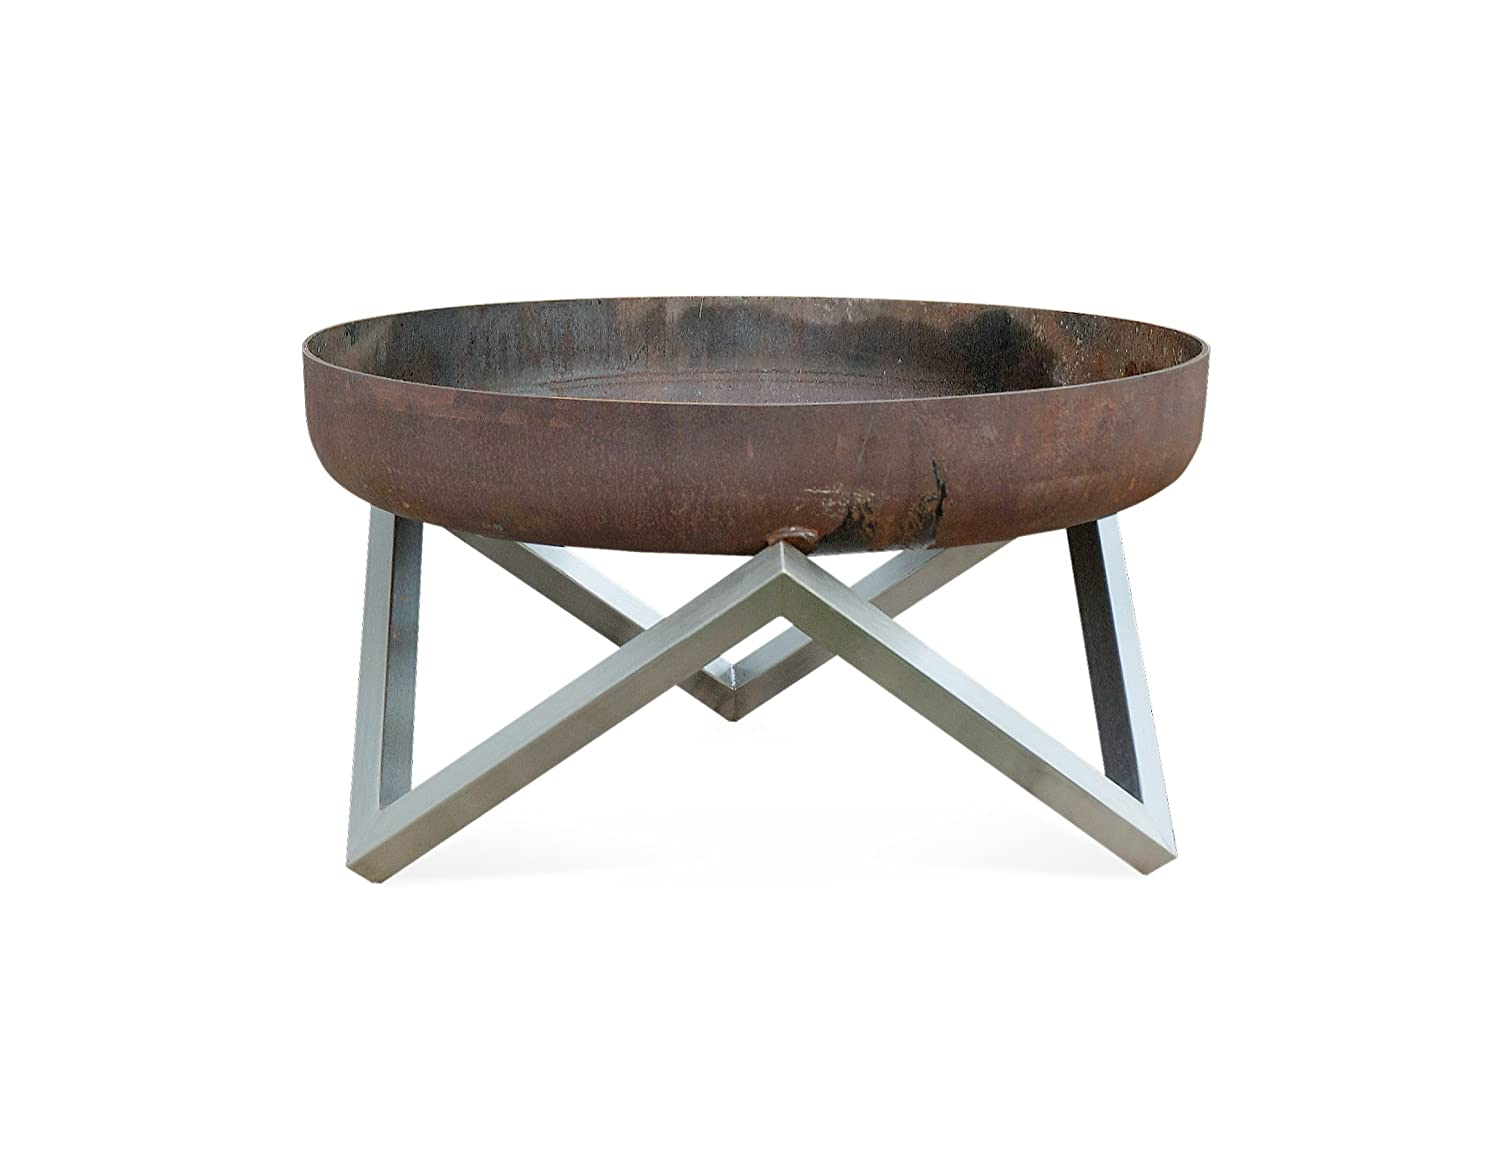 Rust Stainless Steel Modern Outdoor Patio Fire Pit MEMEL Medium